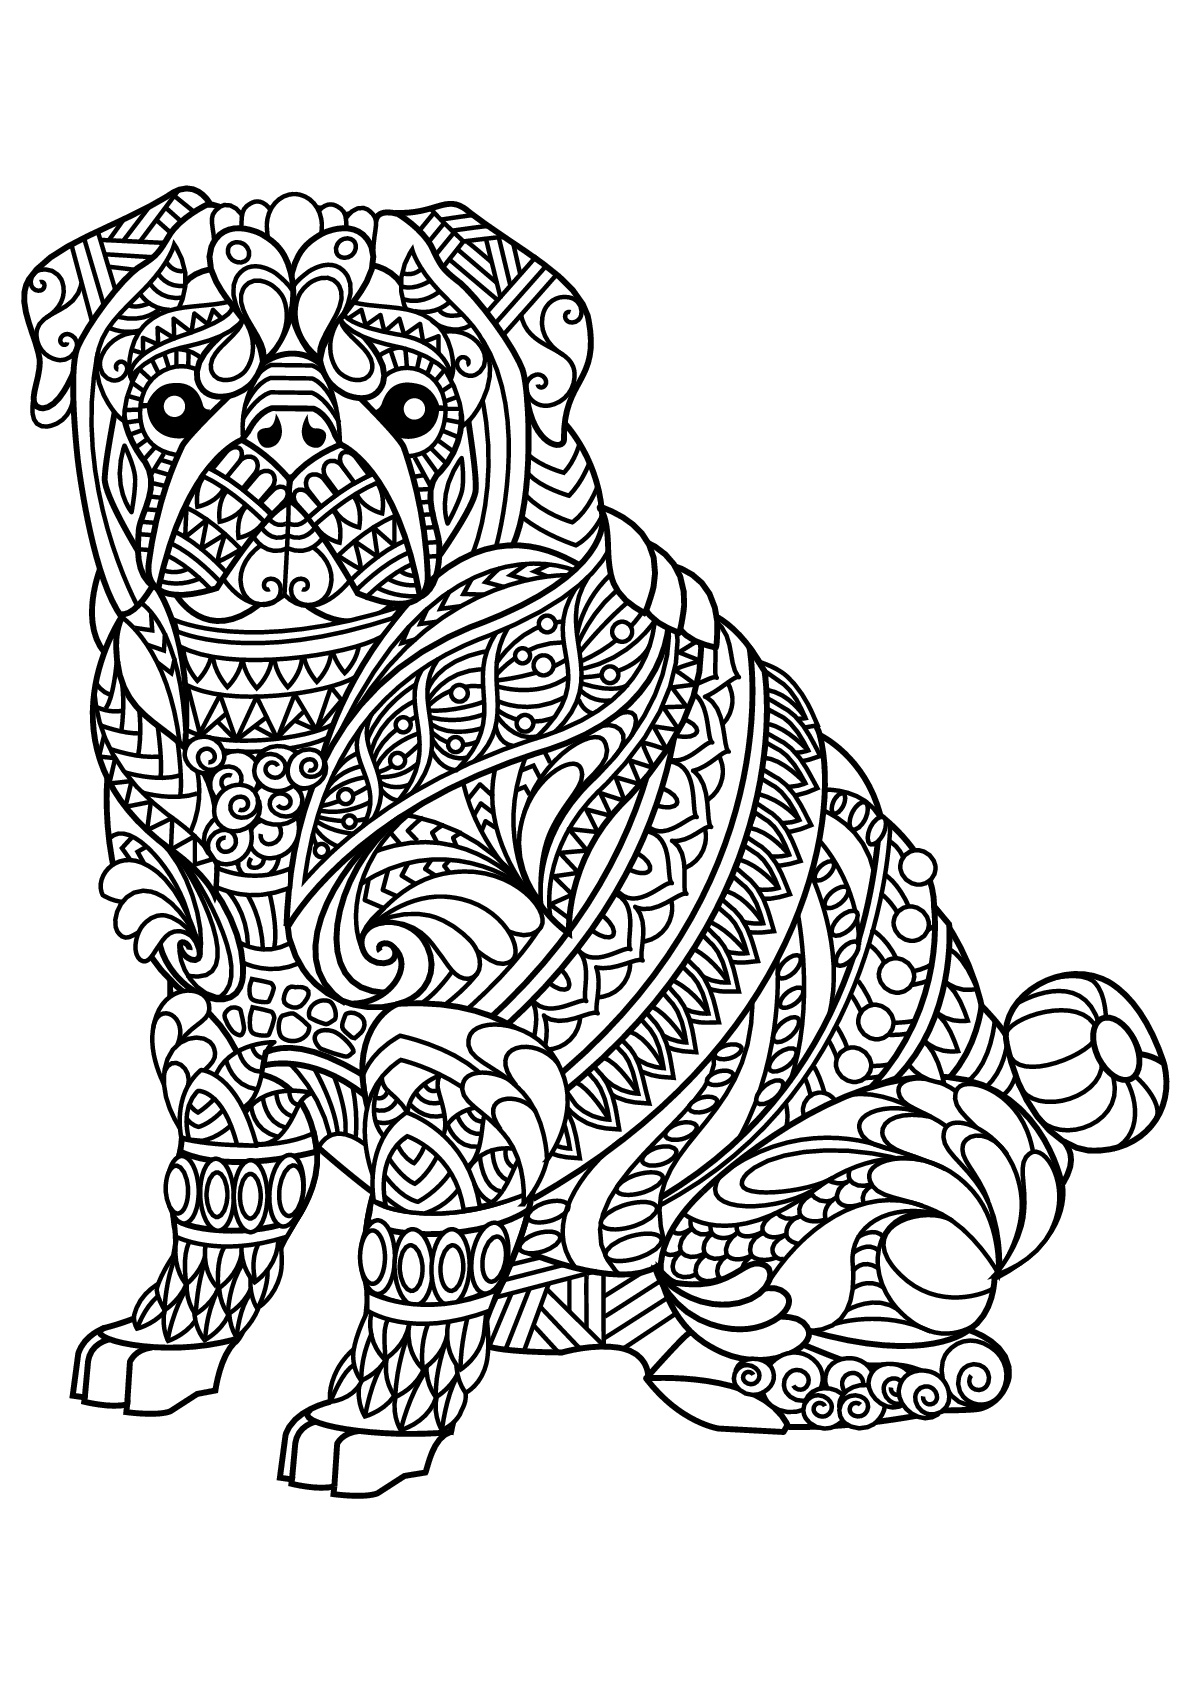 Coloring Page Free Book Dog Bulldog With Complex And Beautiful Patterns